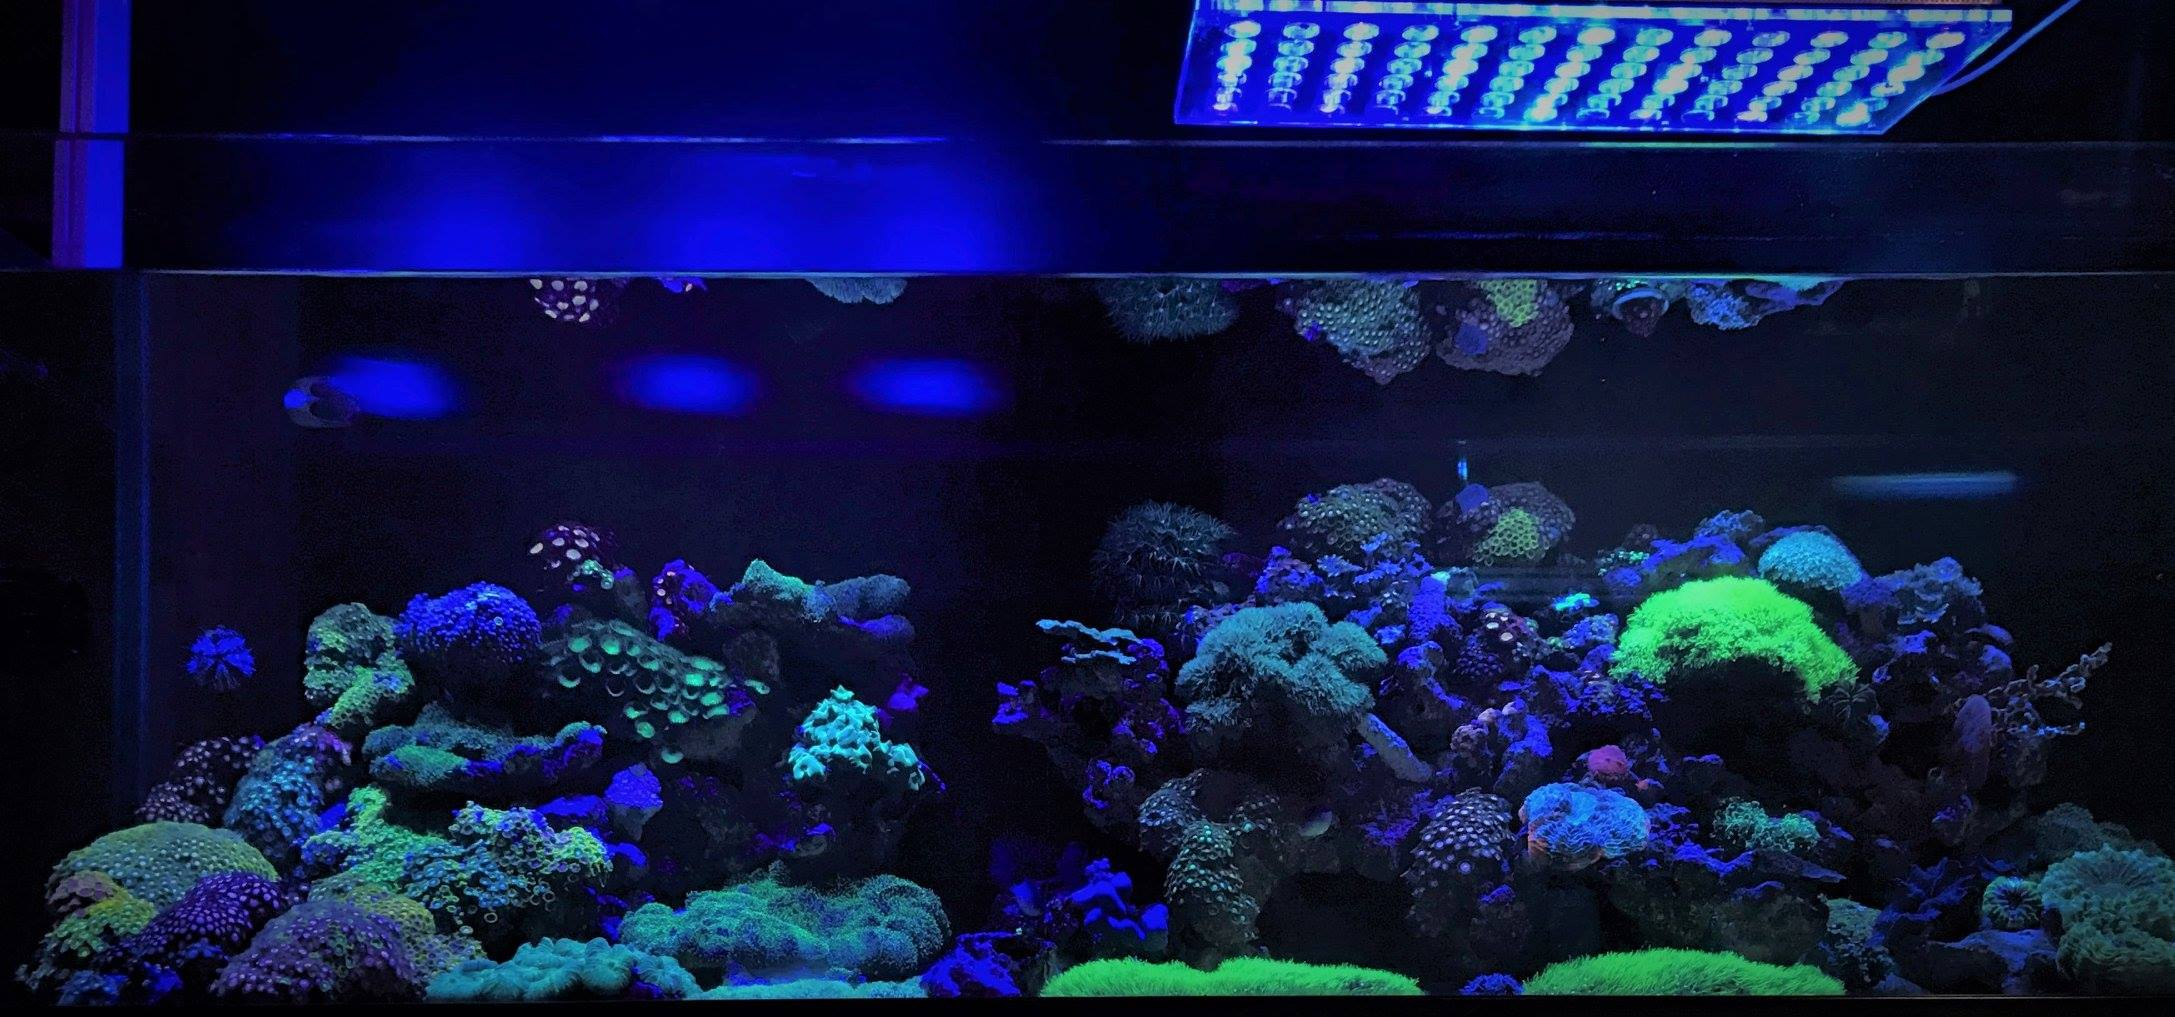 Led Aquarium Moonlight Night View Orphek